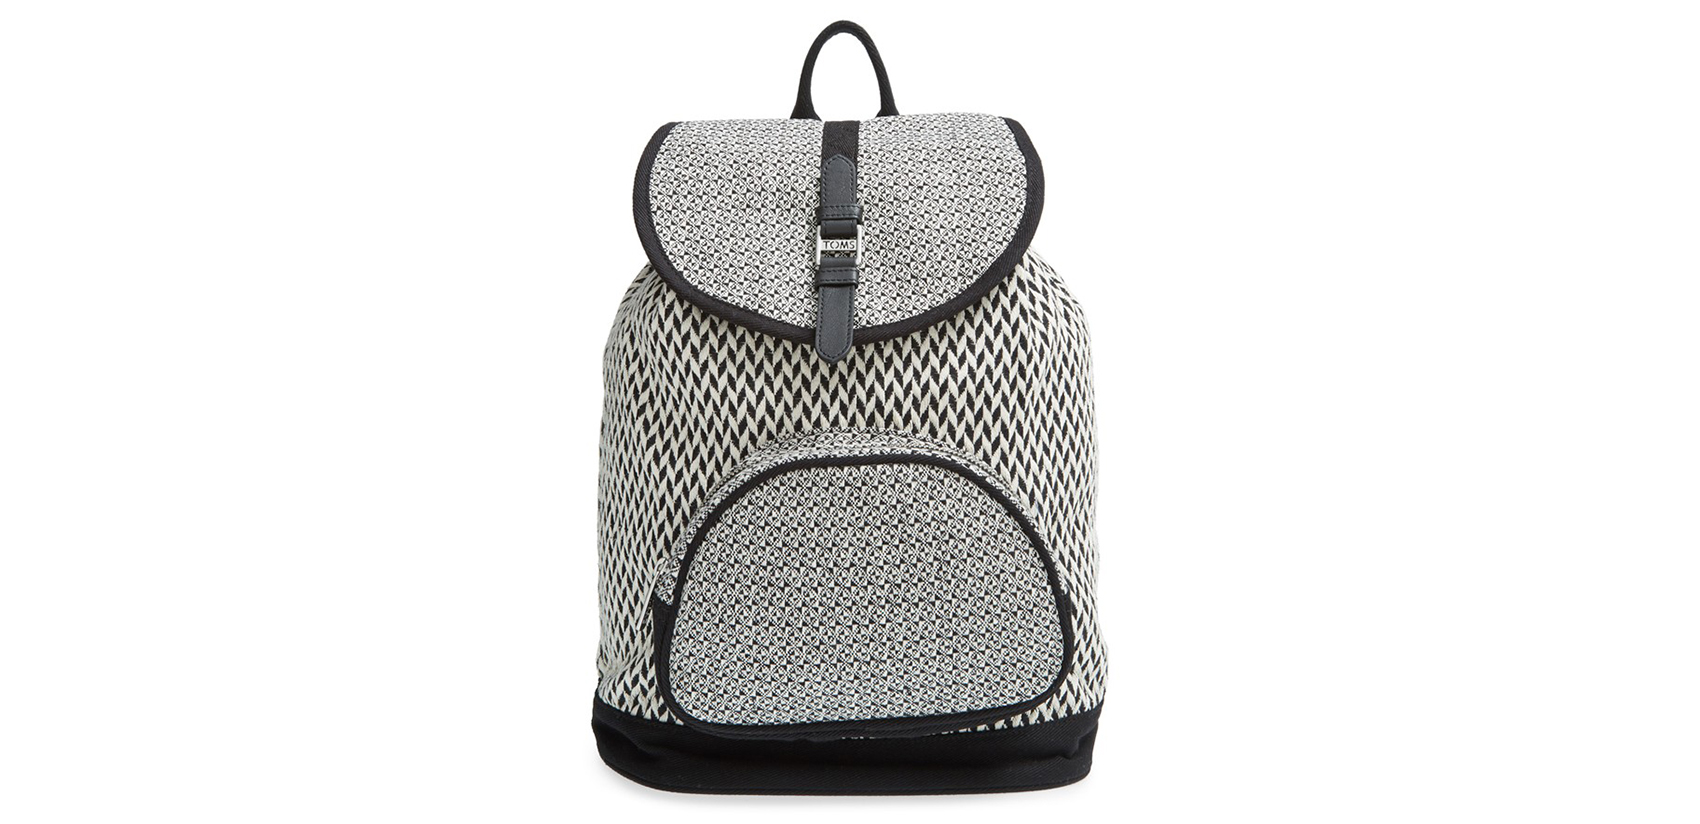 3b600fcc6a34 10 Stylish School Bags for College Students